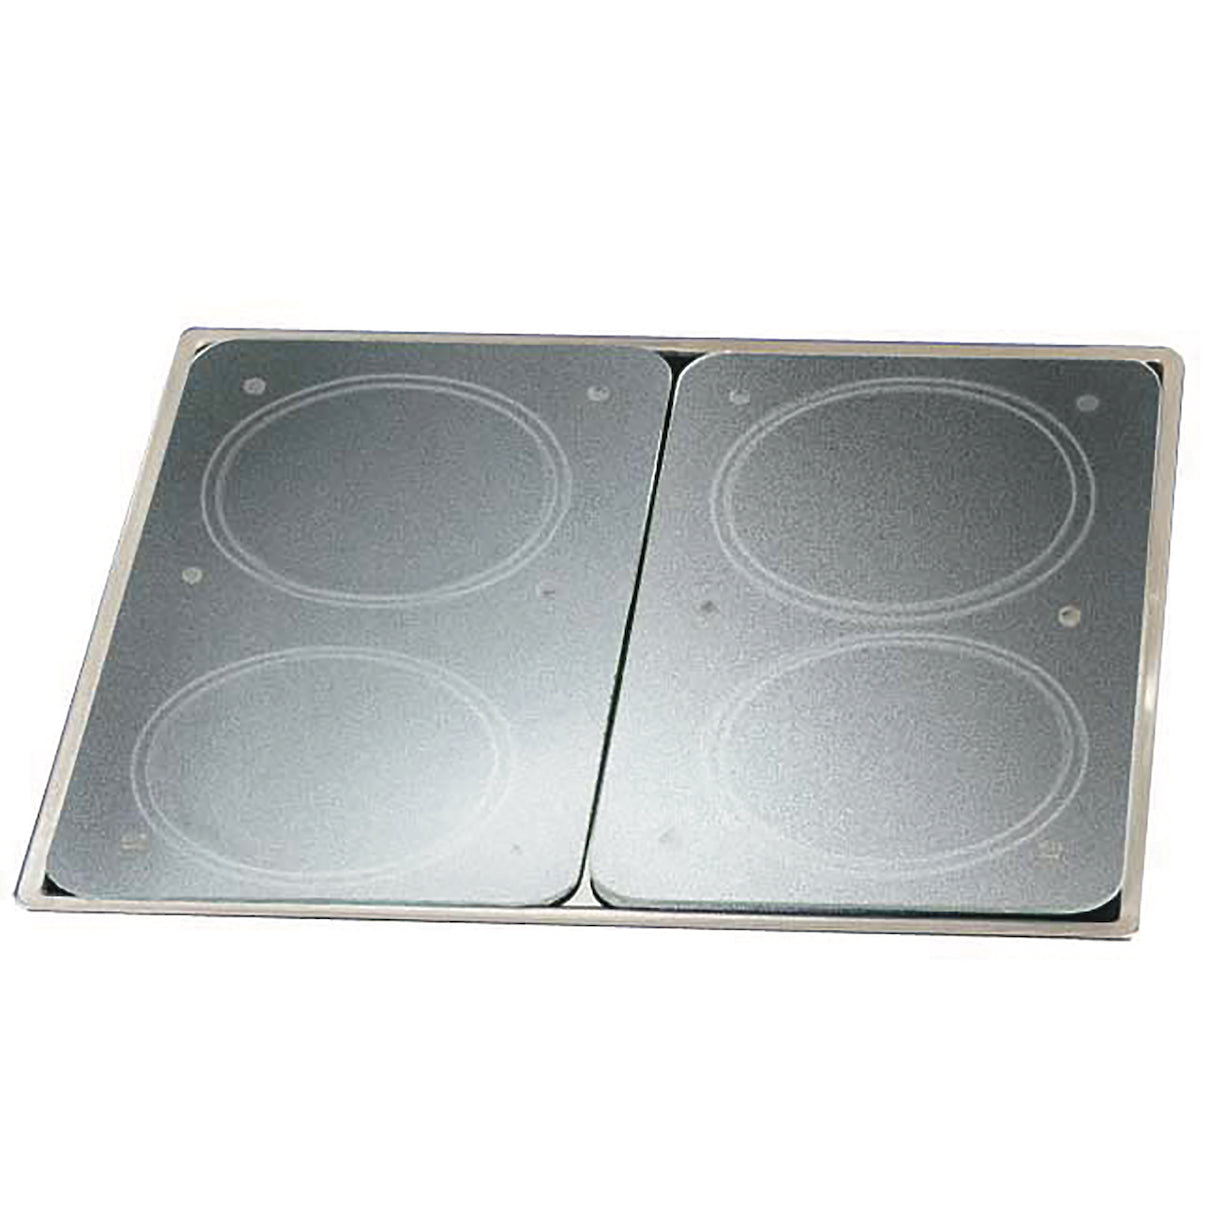 Frosted Cooker Covers